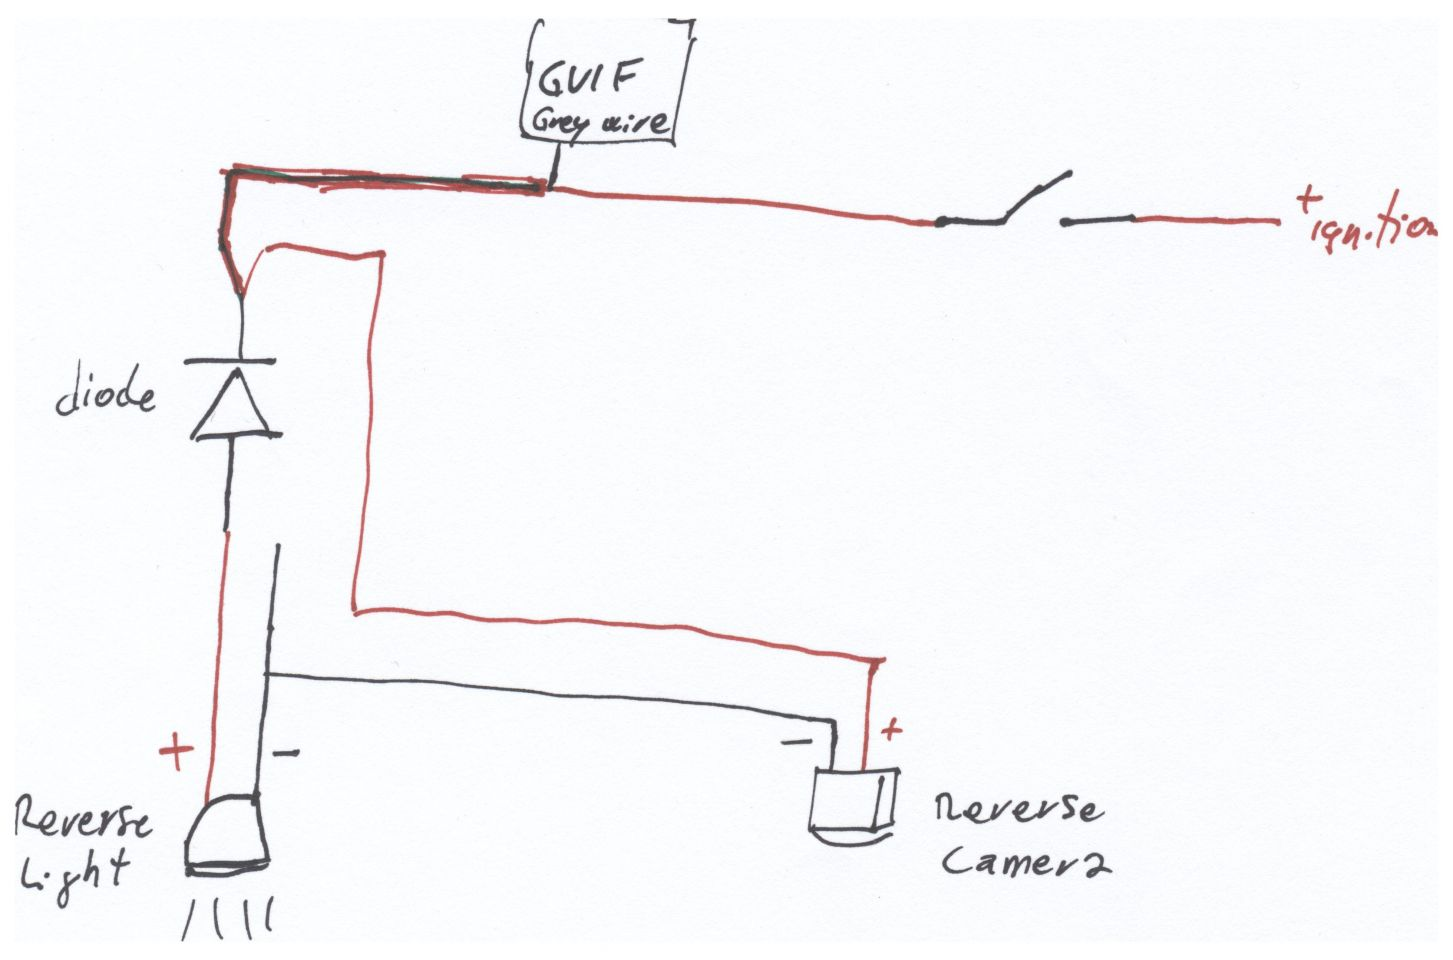 rv camera wiring diagram  rv  free engine image for user